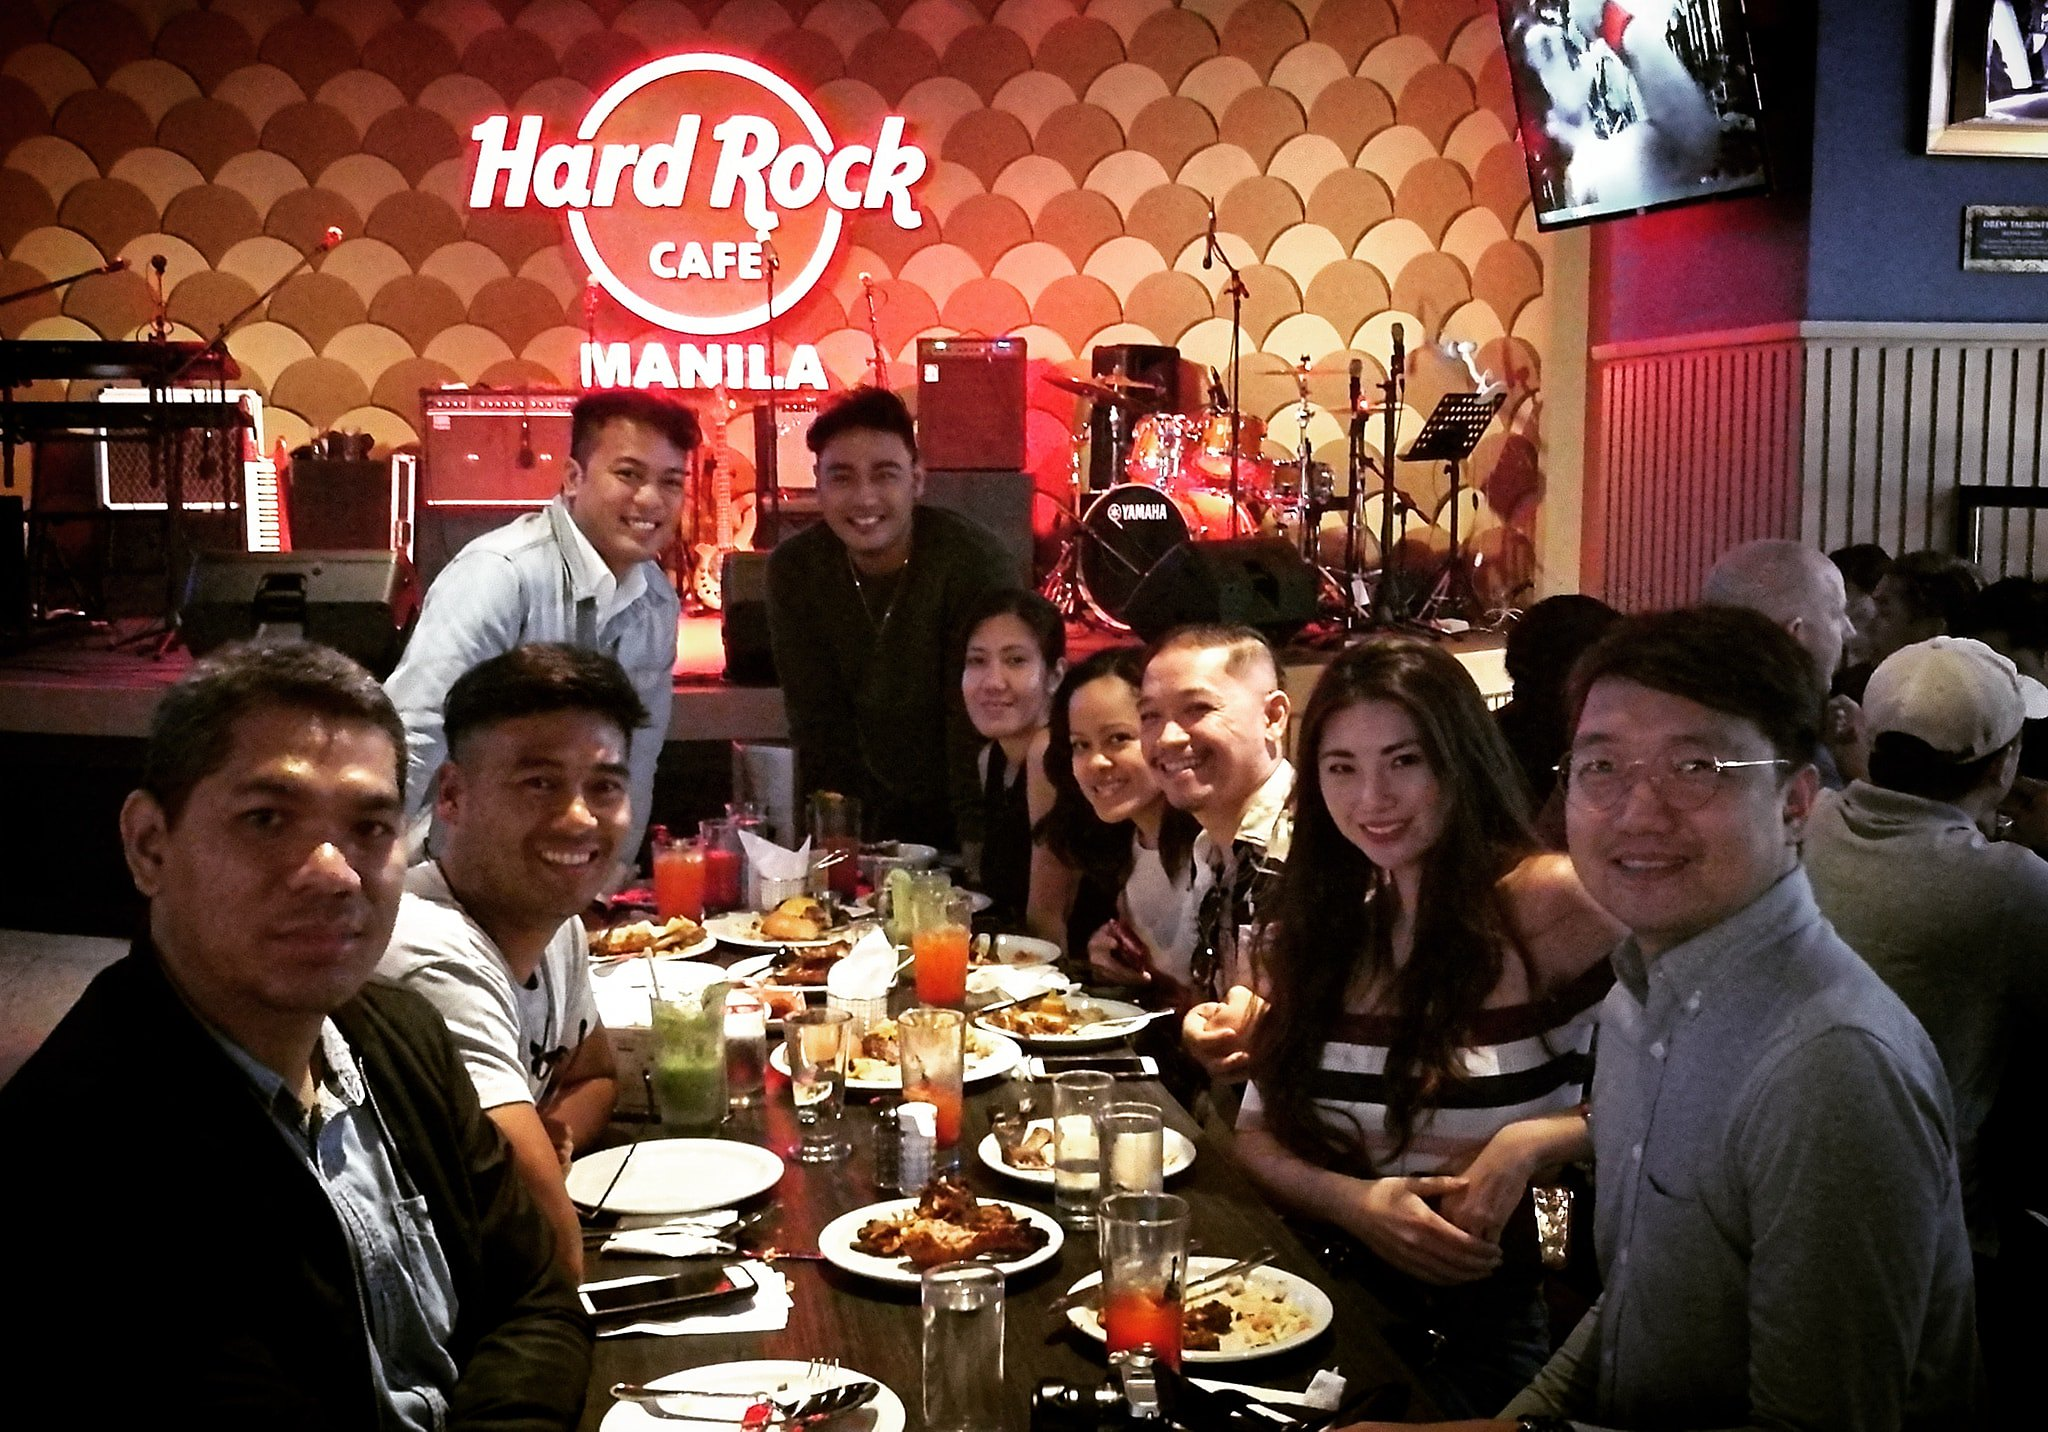 Hard Rock Cafe Manila in S Maison SM Mall of Asia